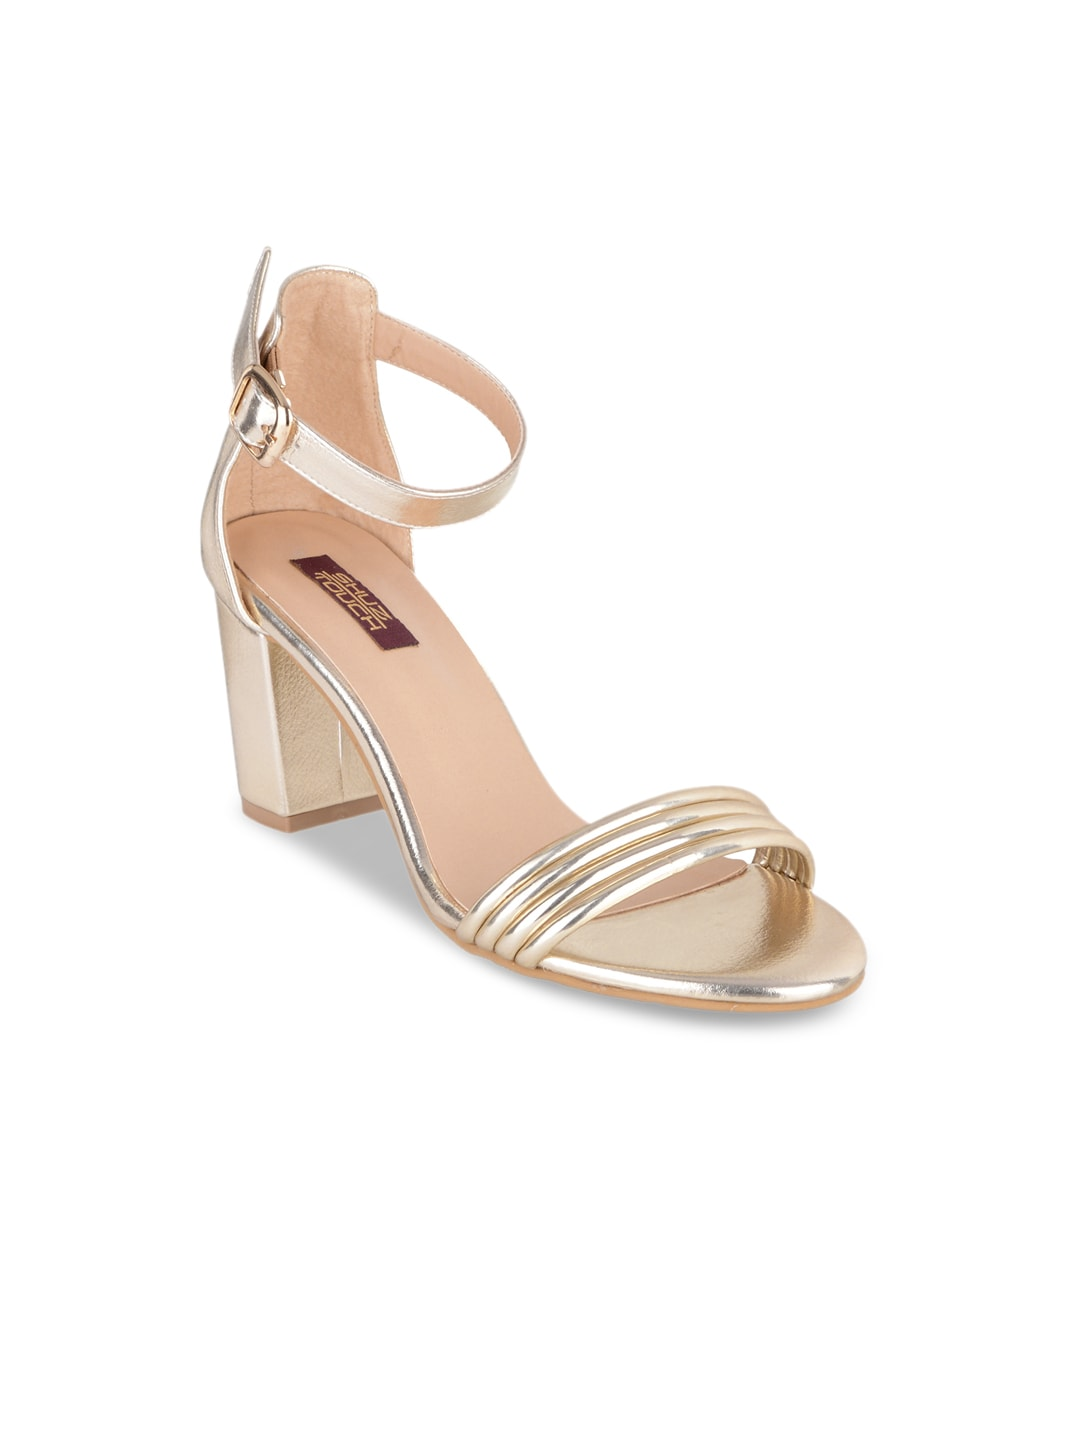 00ccd57f5 Women Party On Heels - Buy Women Party On Heels online in India